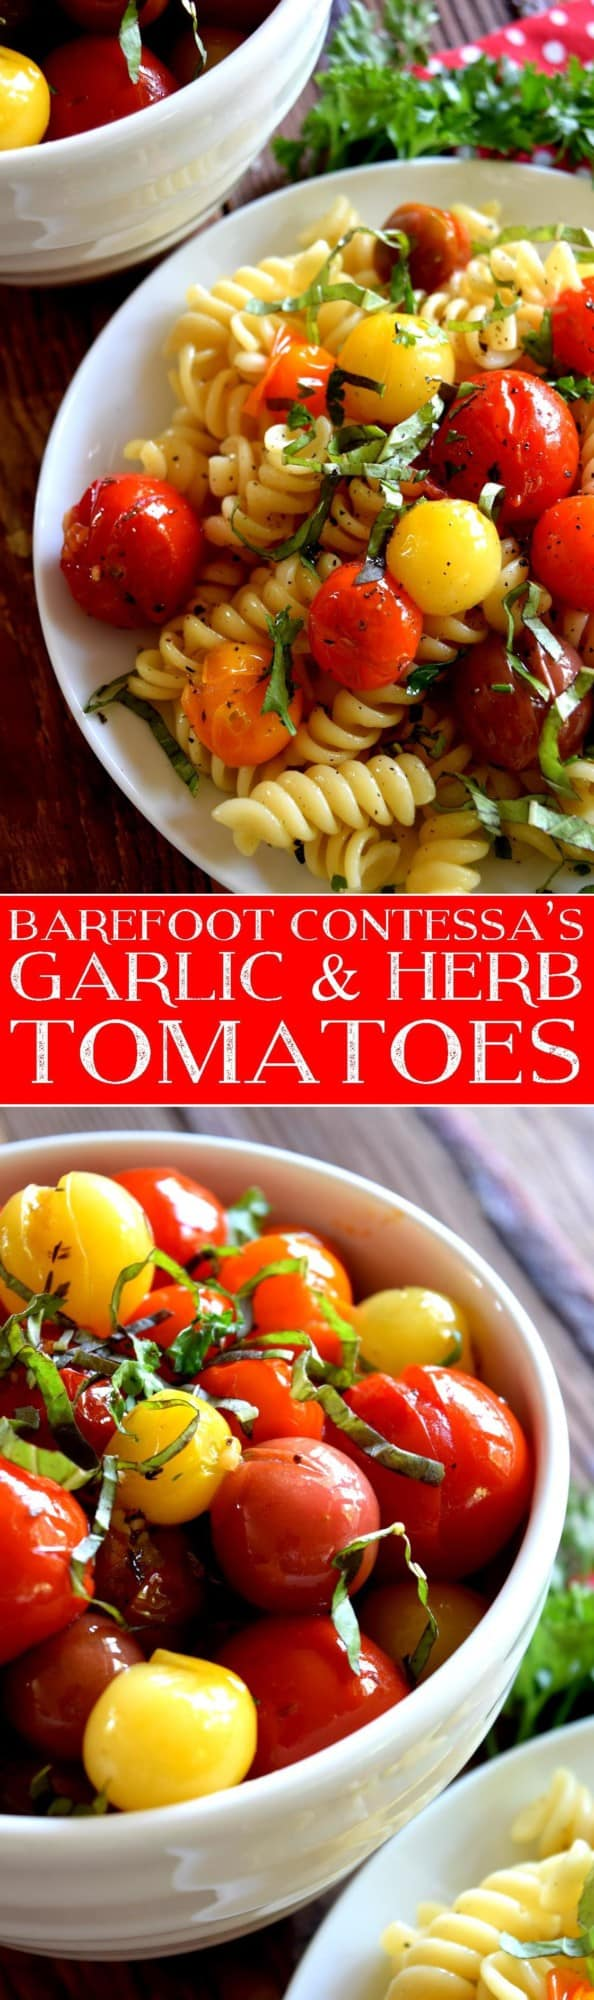 garlic-and-herb-tomatoes